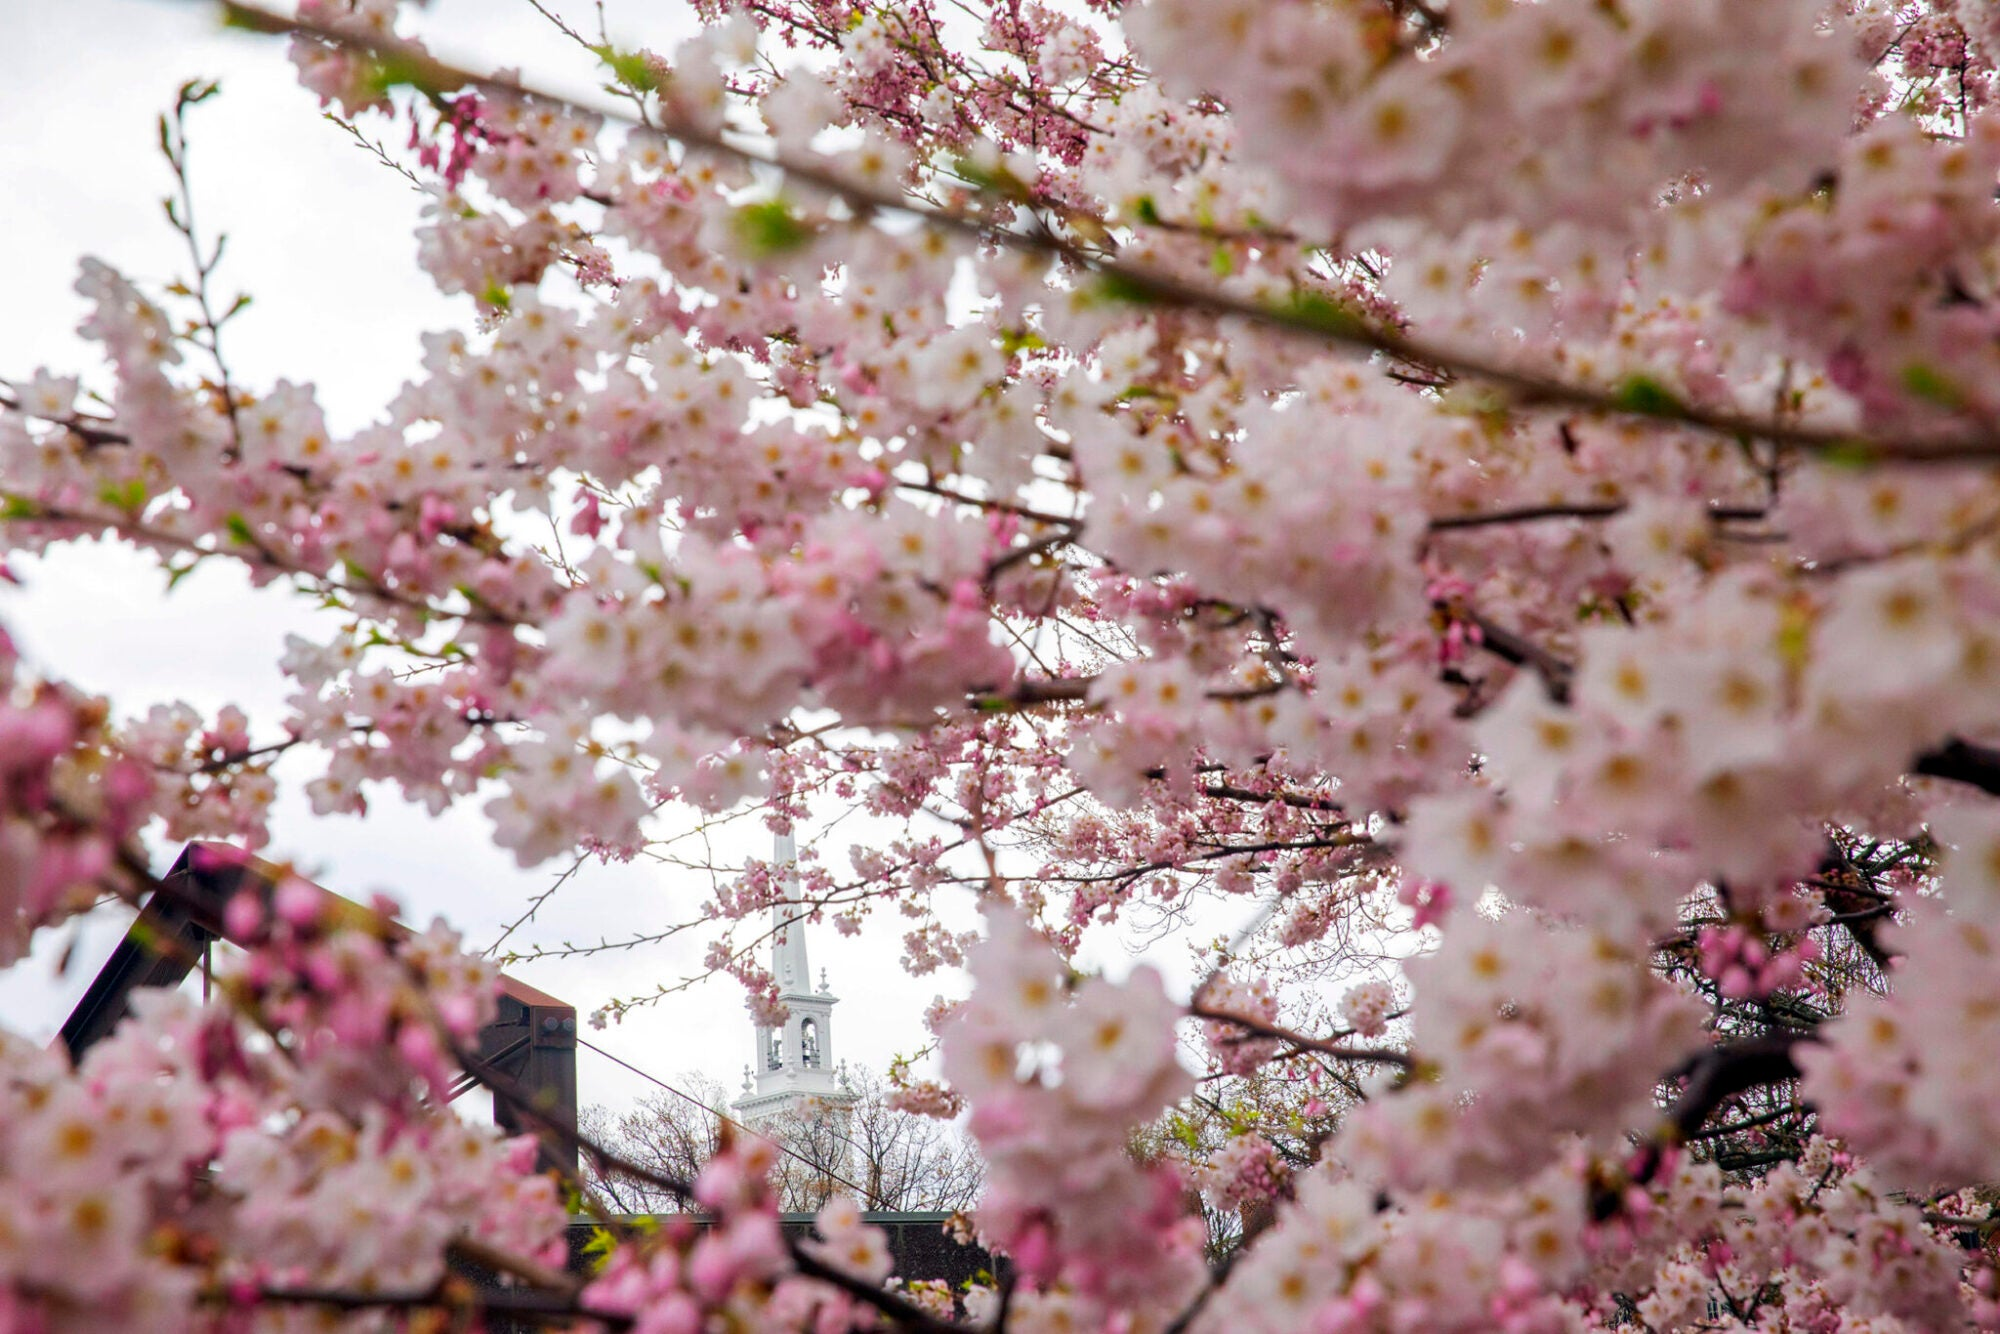 Cherry blossoms on a tree in front of a church